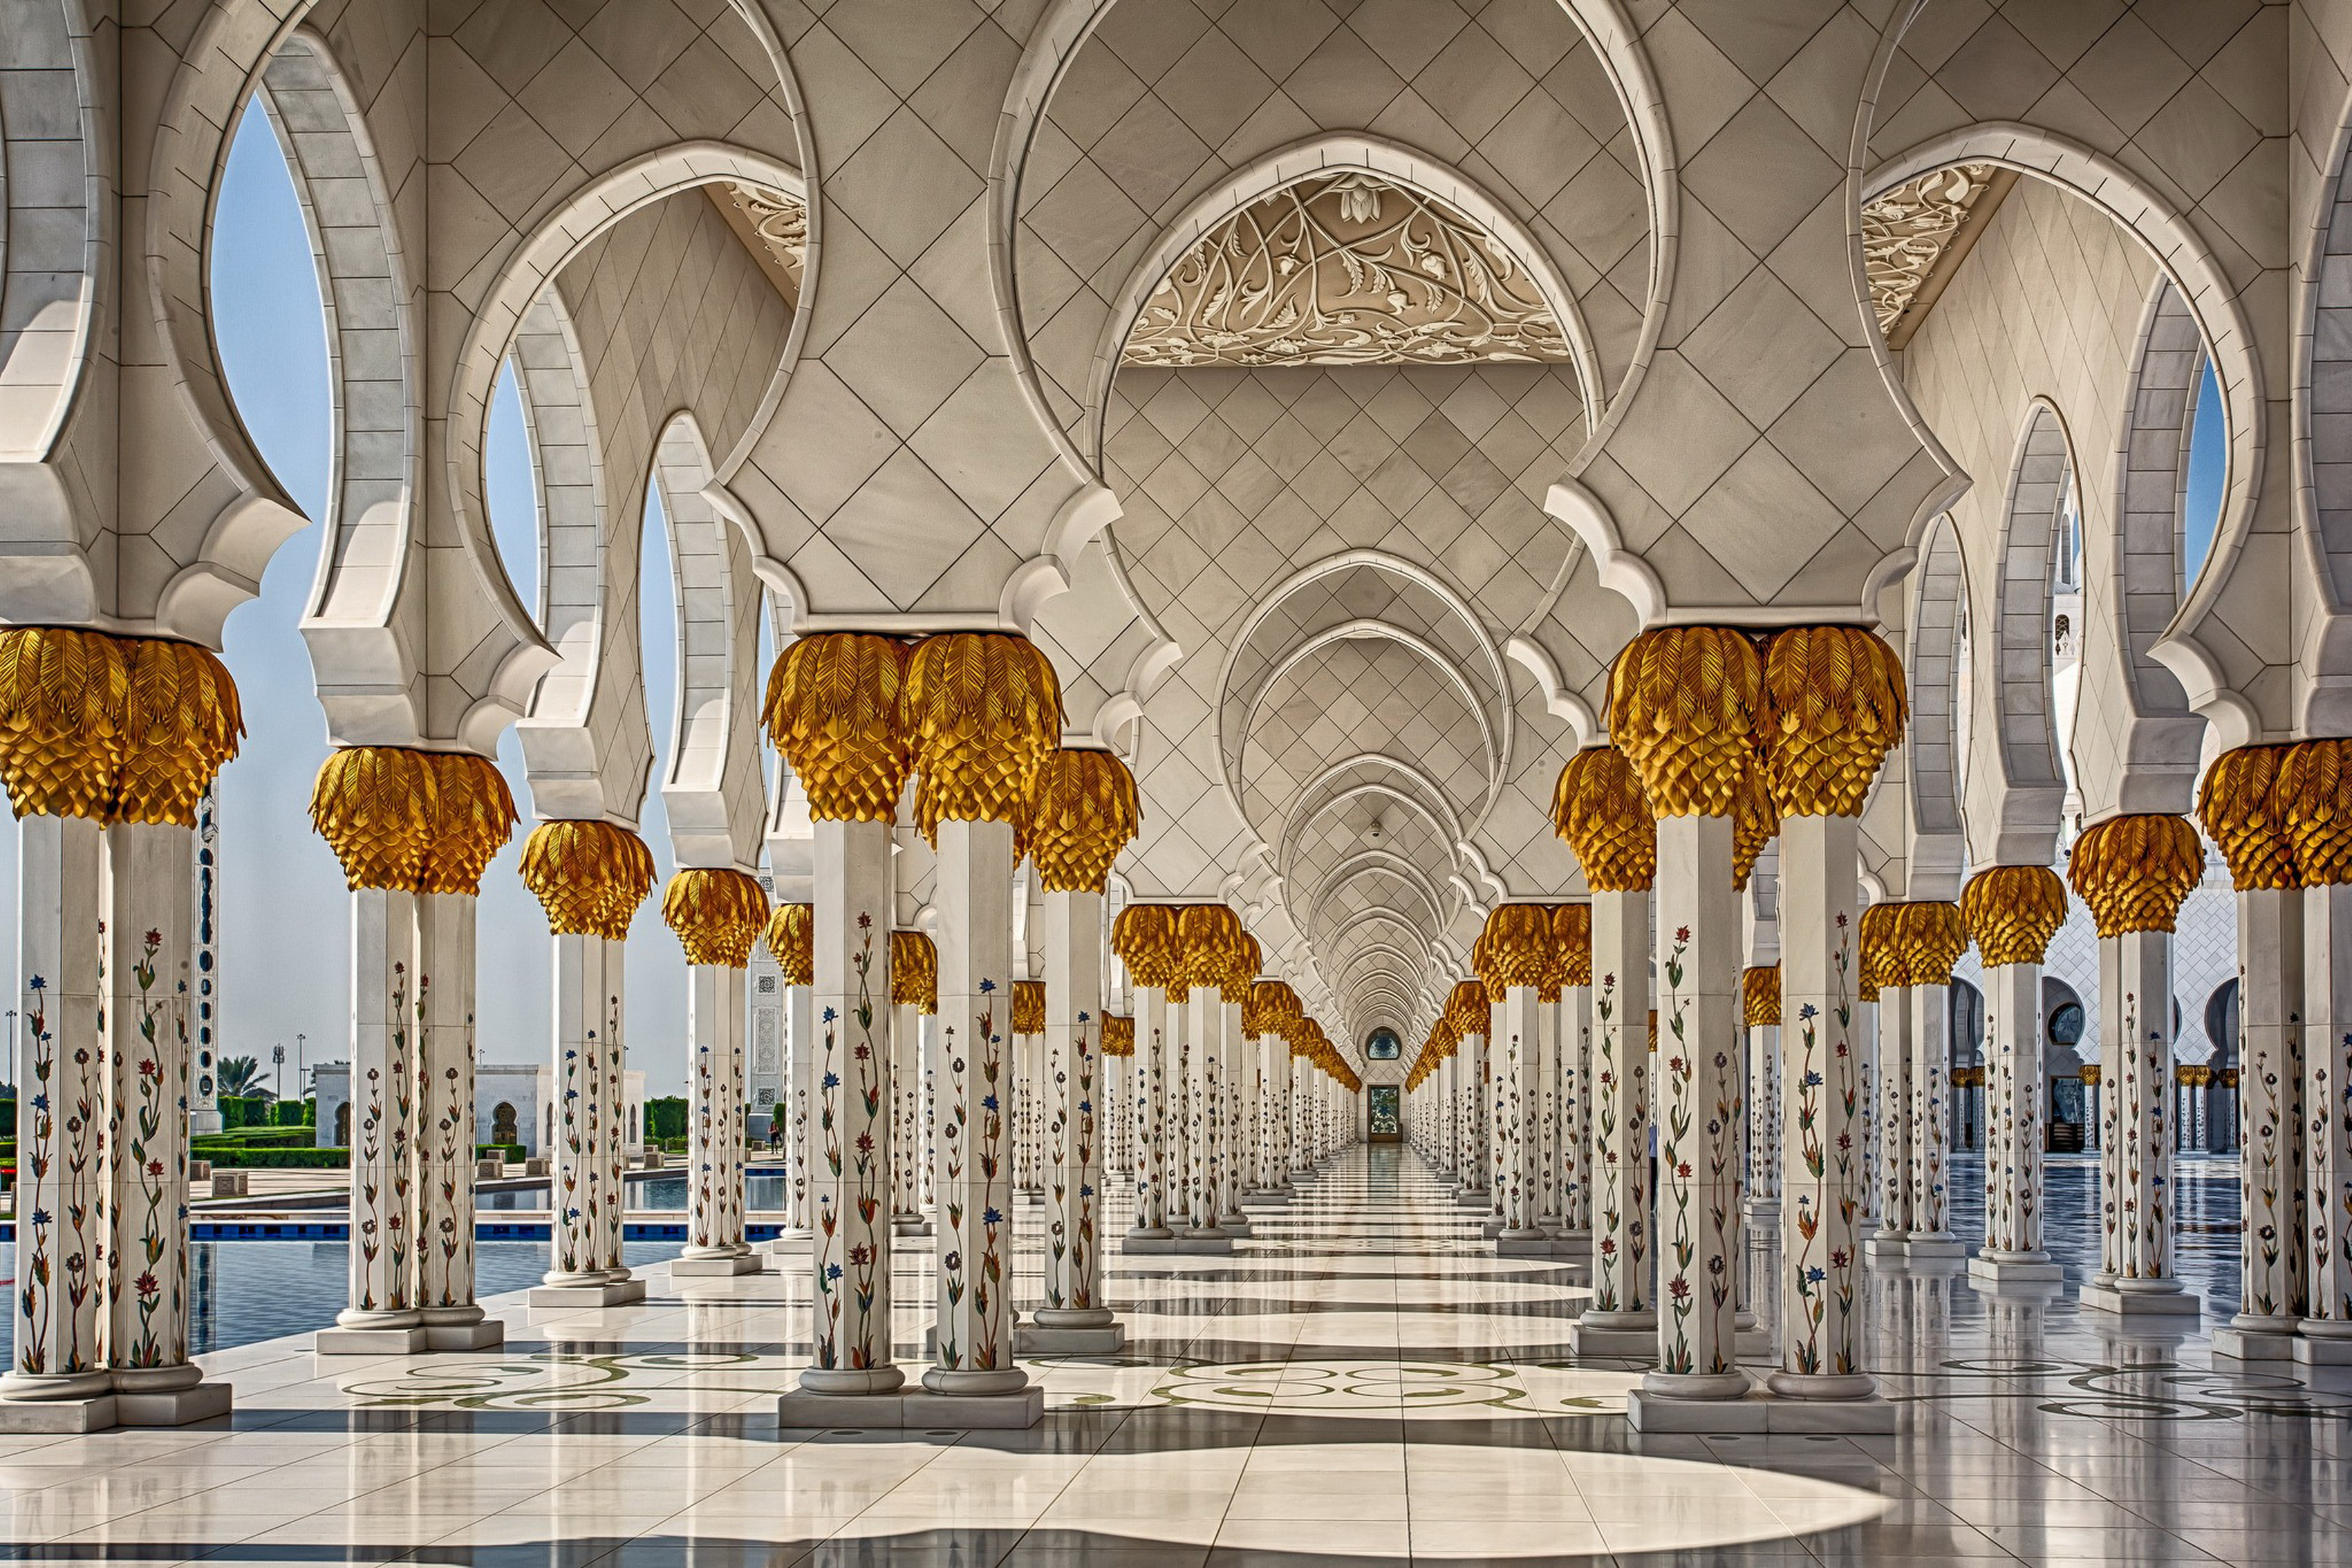 popular home interiors painting buy cheap home interiors painting home decoration architecture interiors abu dhabi mosques united arab emirates pillars arches silk fabric poster print